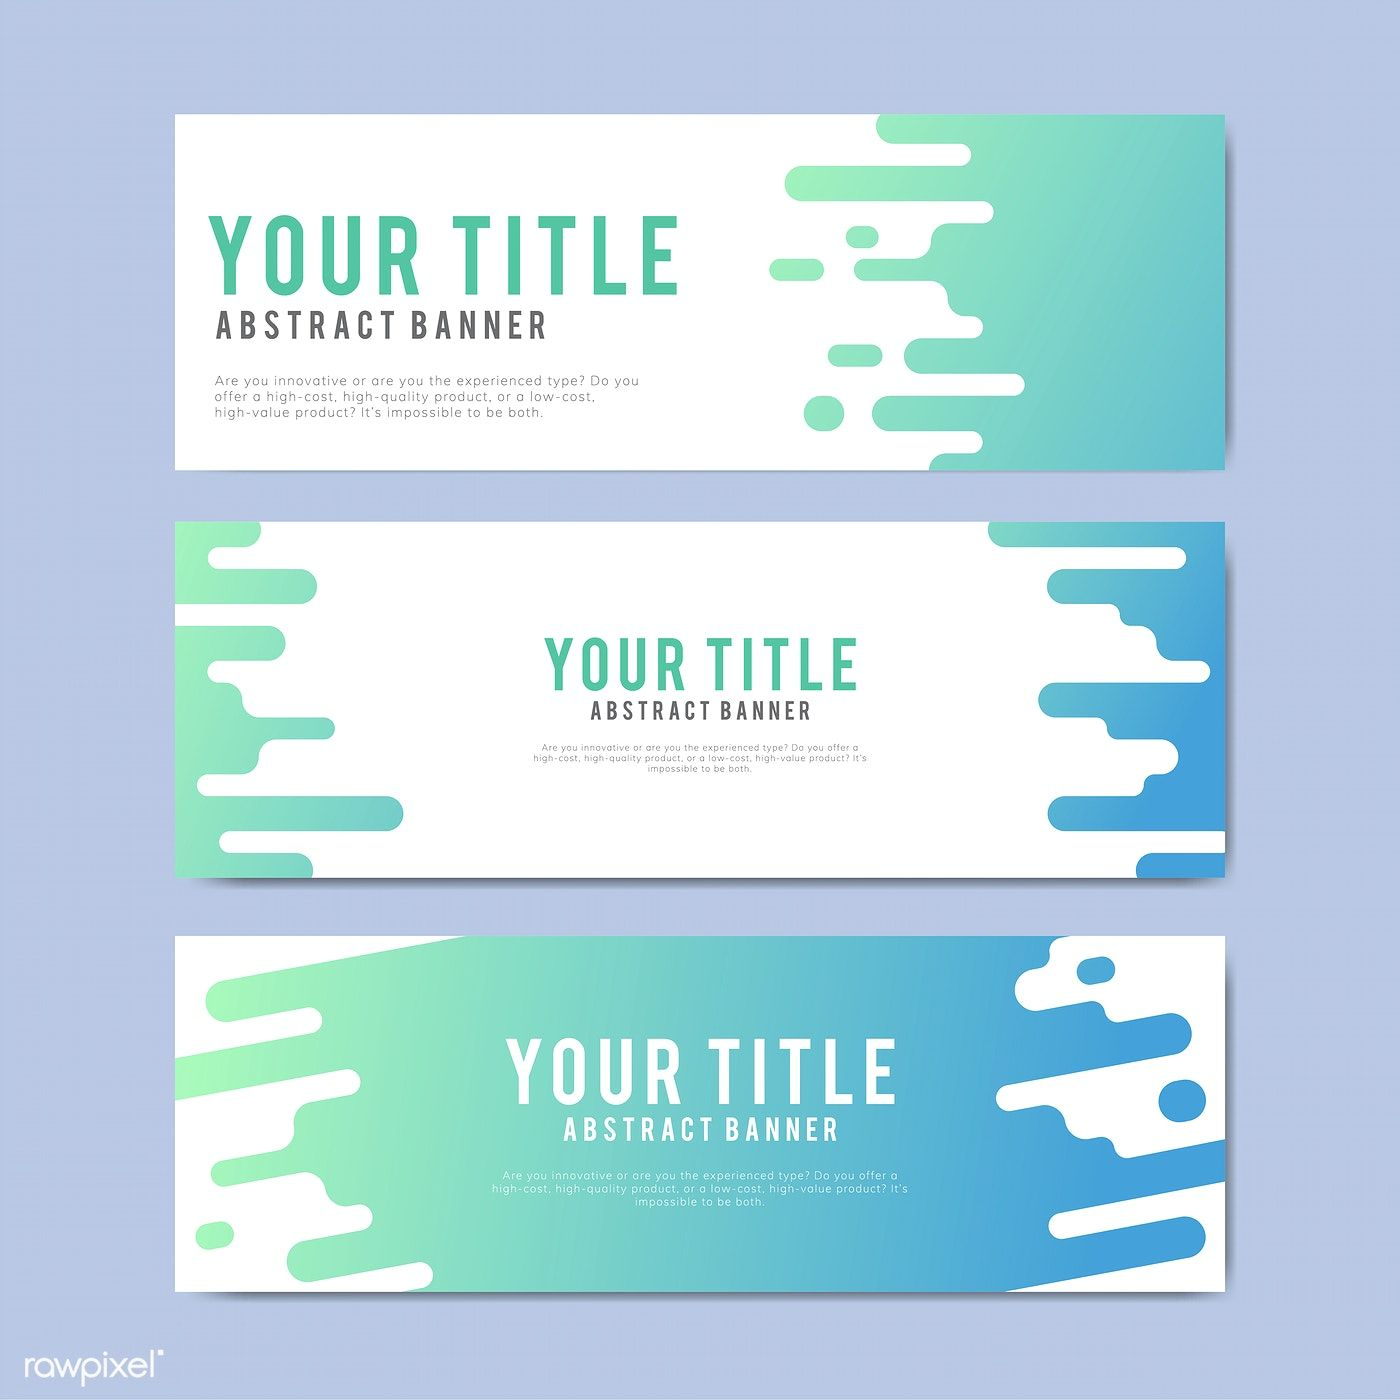 Colorful And Abstract Banner Design Templates Free Image By Rawpixel Com Banner Design Banner Design Layout Template Design